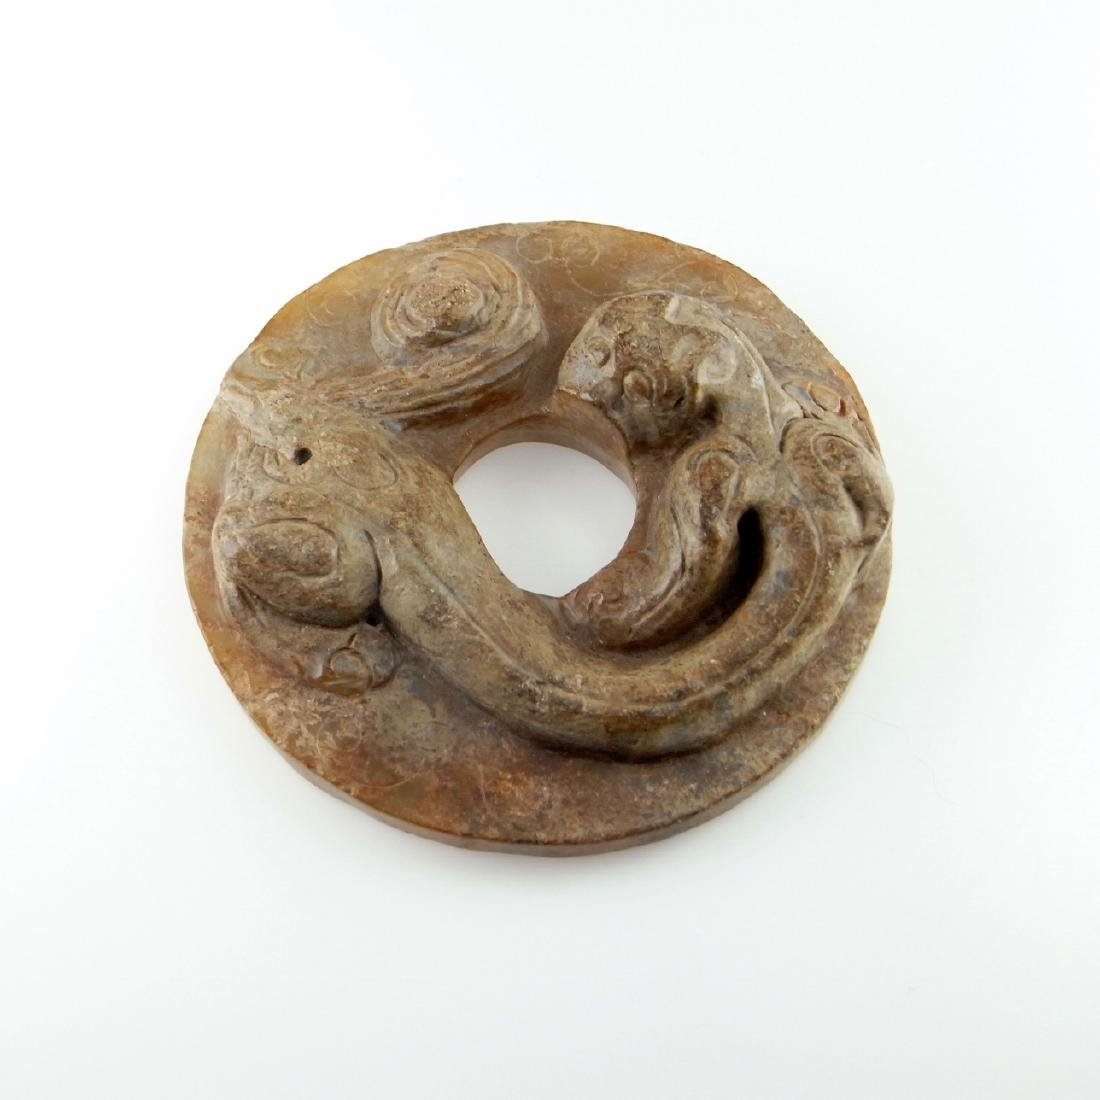 CHI TIGER BI DISC ORNAMENT HAN ANCIENT CHINA